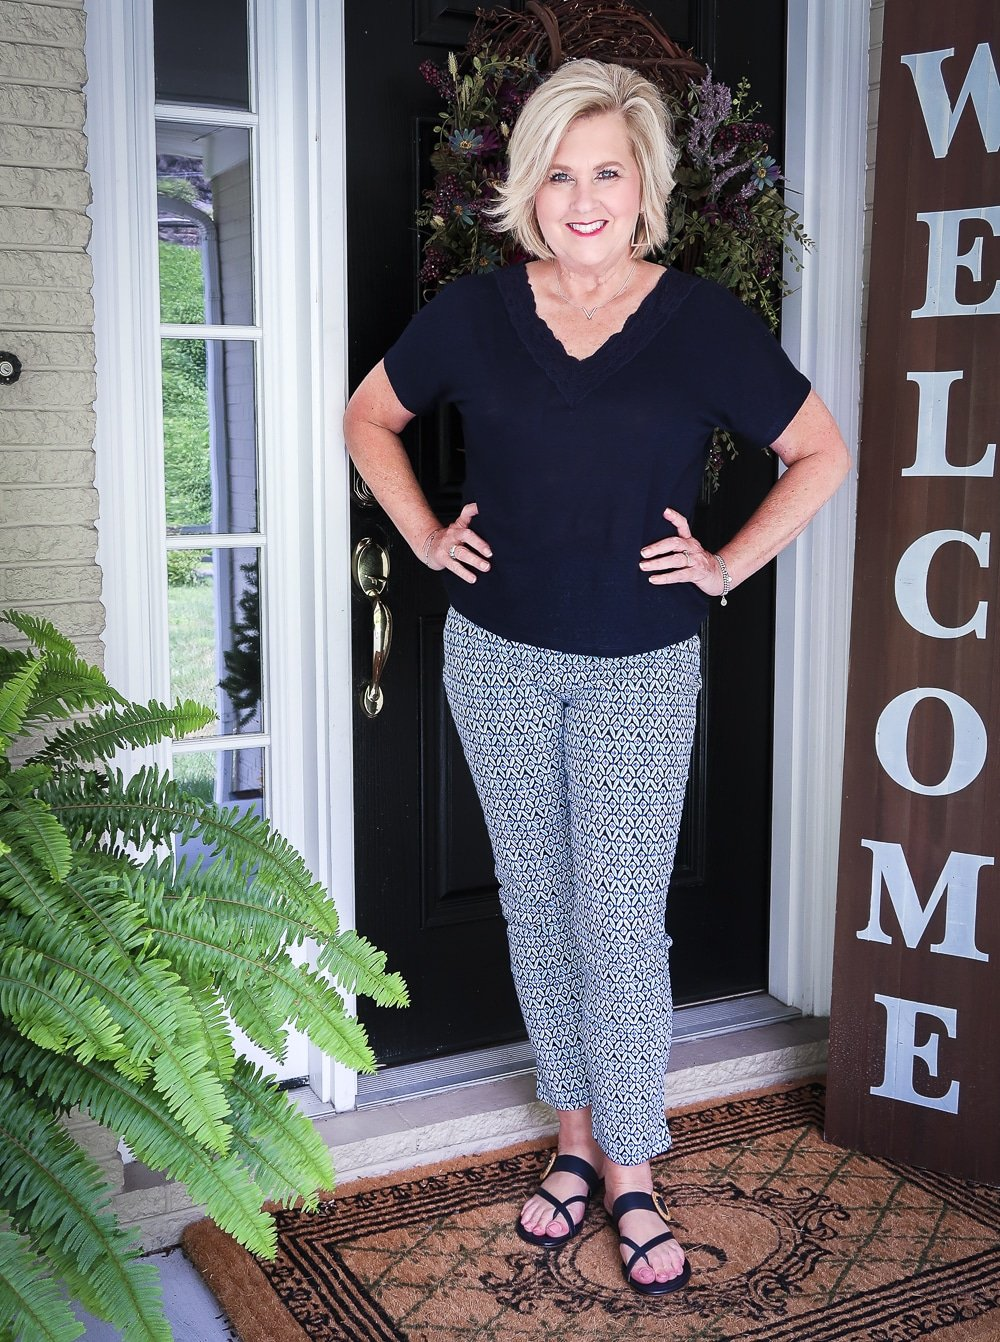 Fashion Blogger 50 Is Not Old wearing a dark navy linen top with a lace neckline and blue printed ankle pants with navy sandals